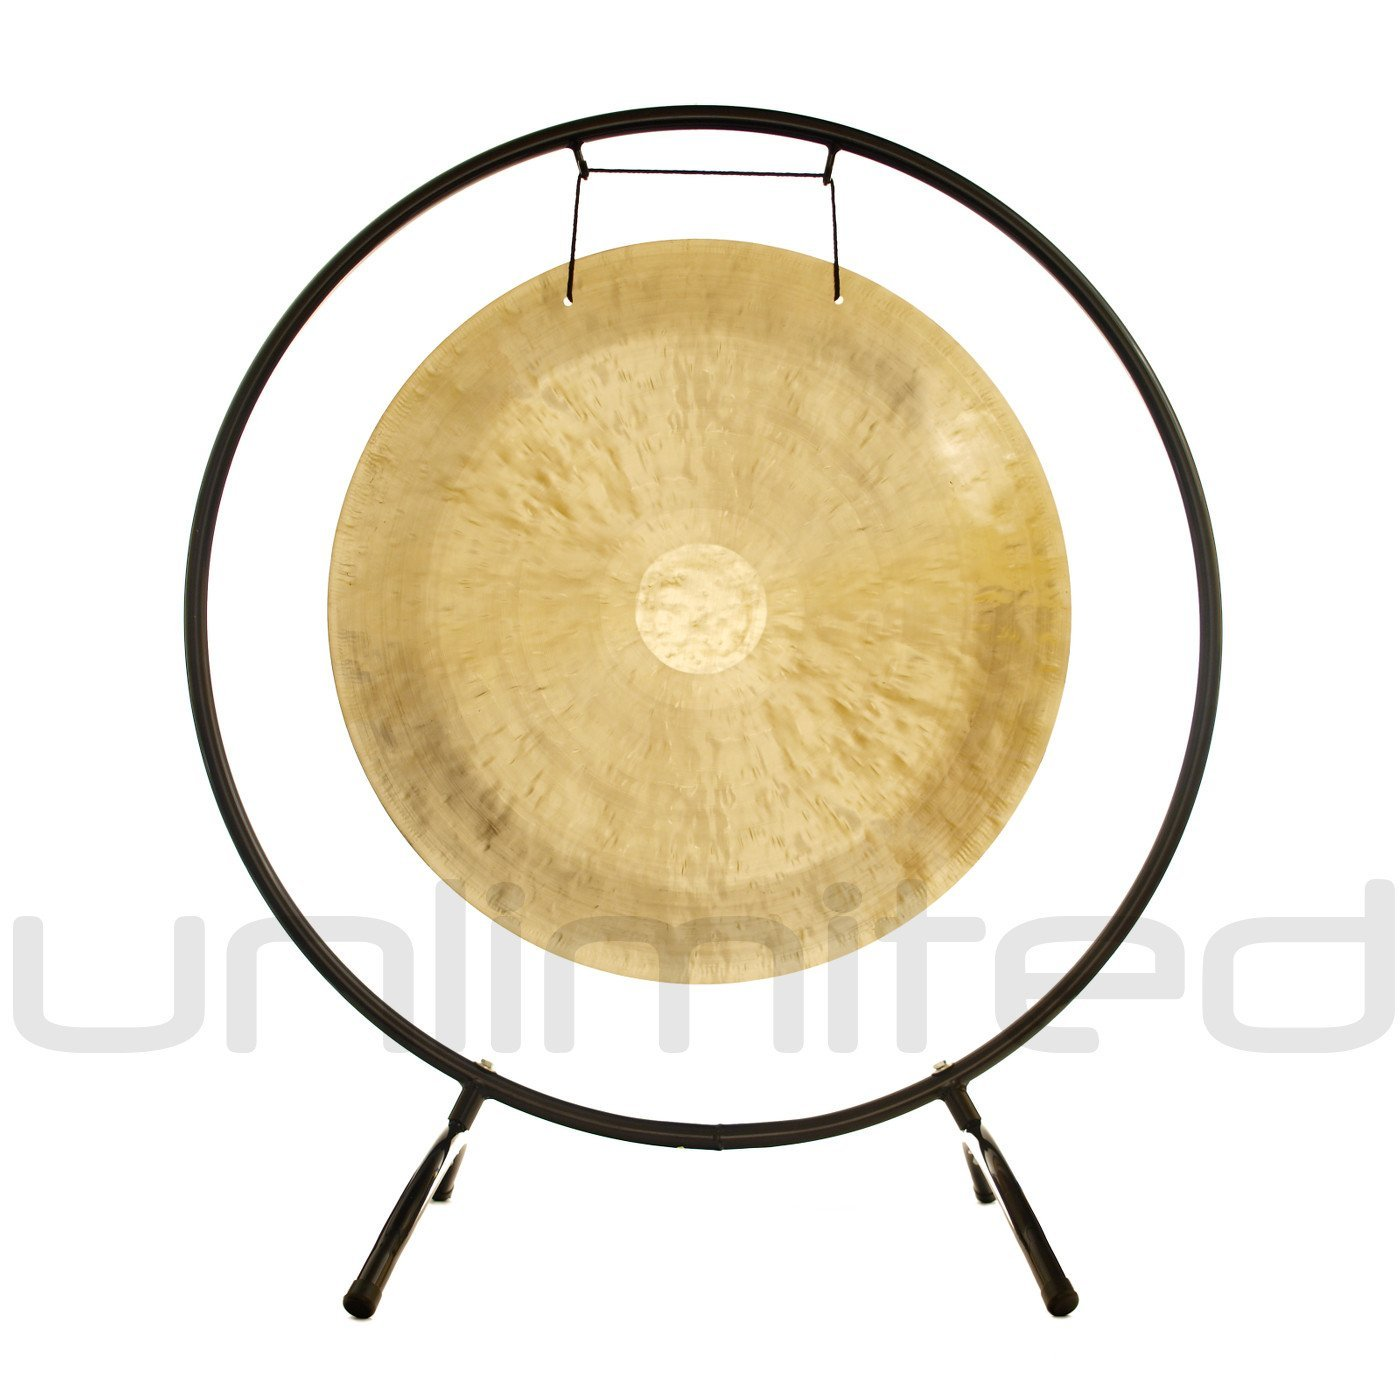 20'' to 24'' Gongs on the Holding Space Gong Stand